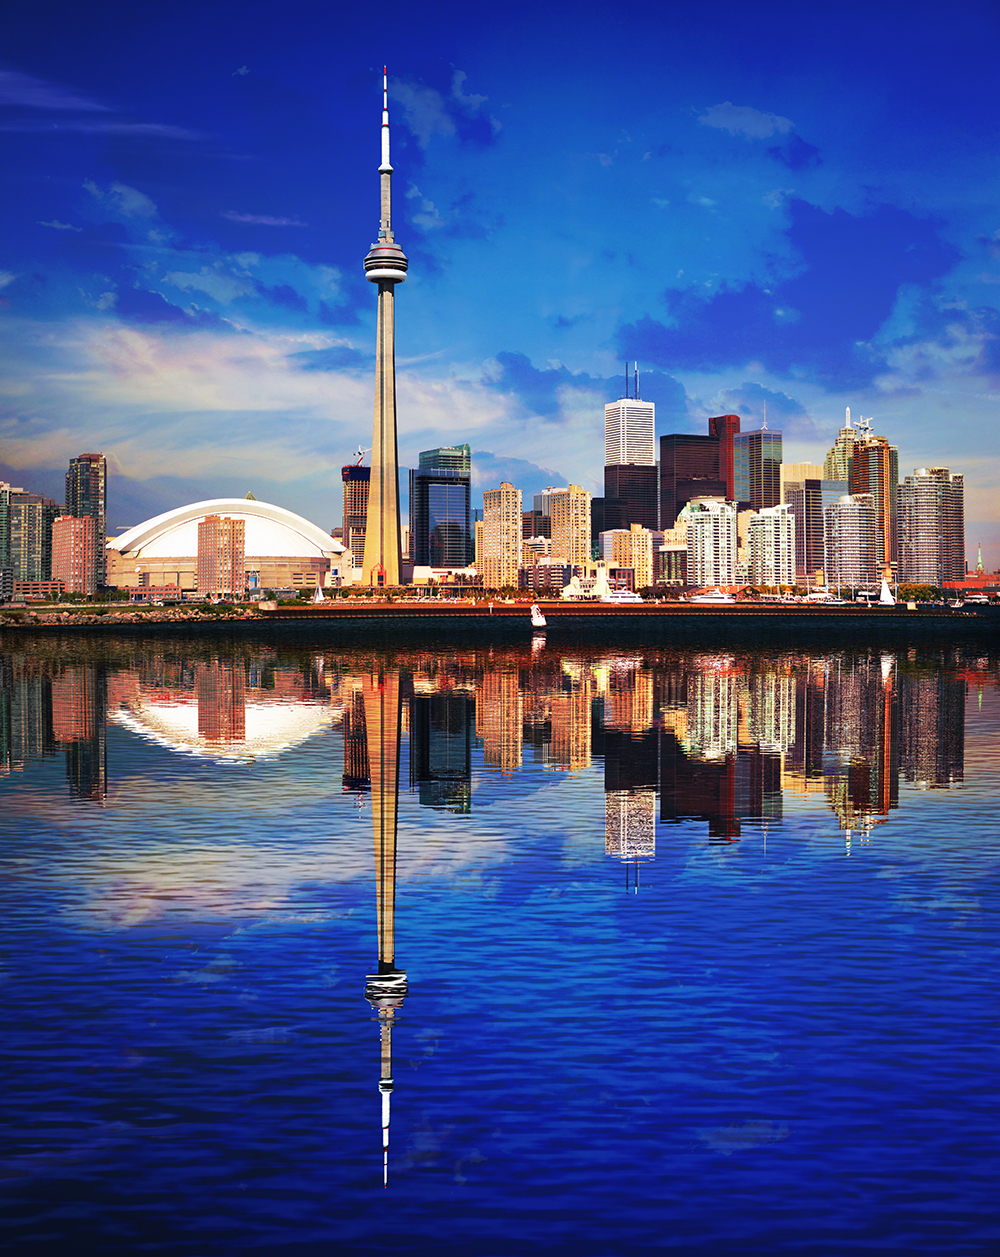 Toronto Water Reflection 01 - Royalty-Free Stock Imagery